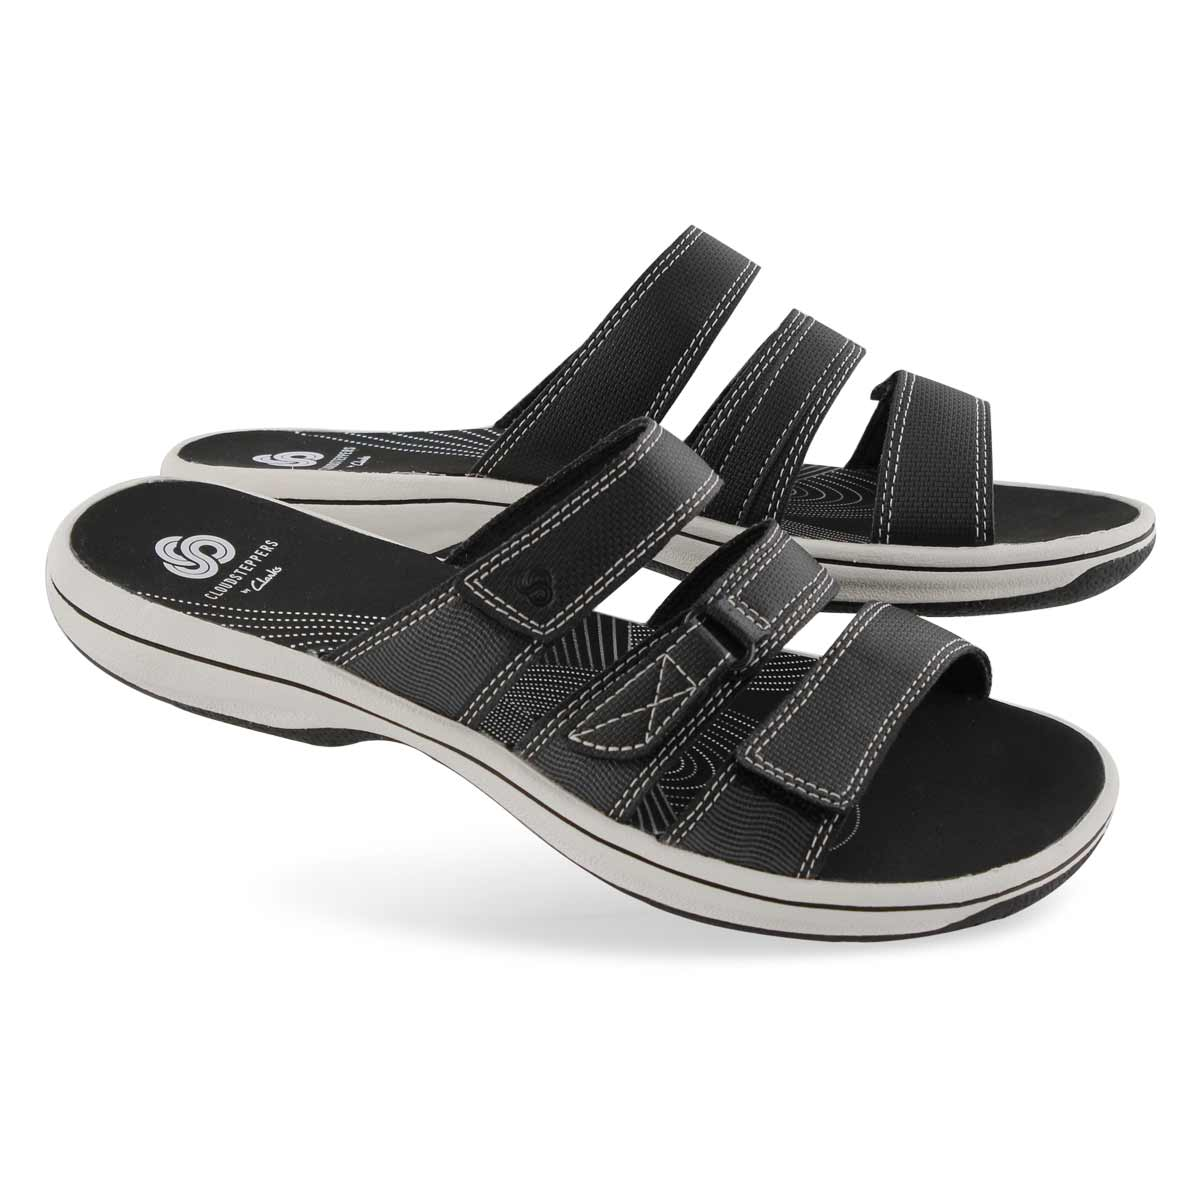 Lds Brinkley Coast black slide sandal